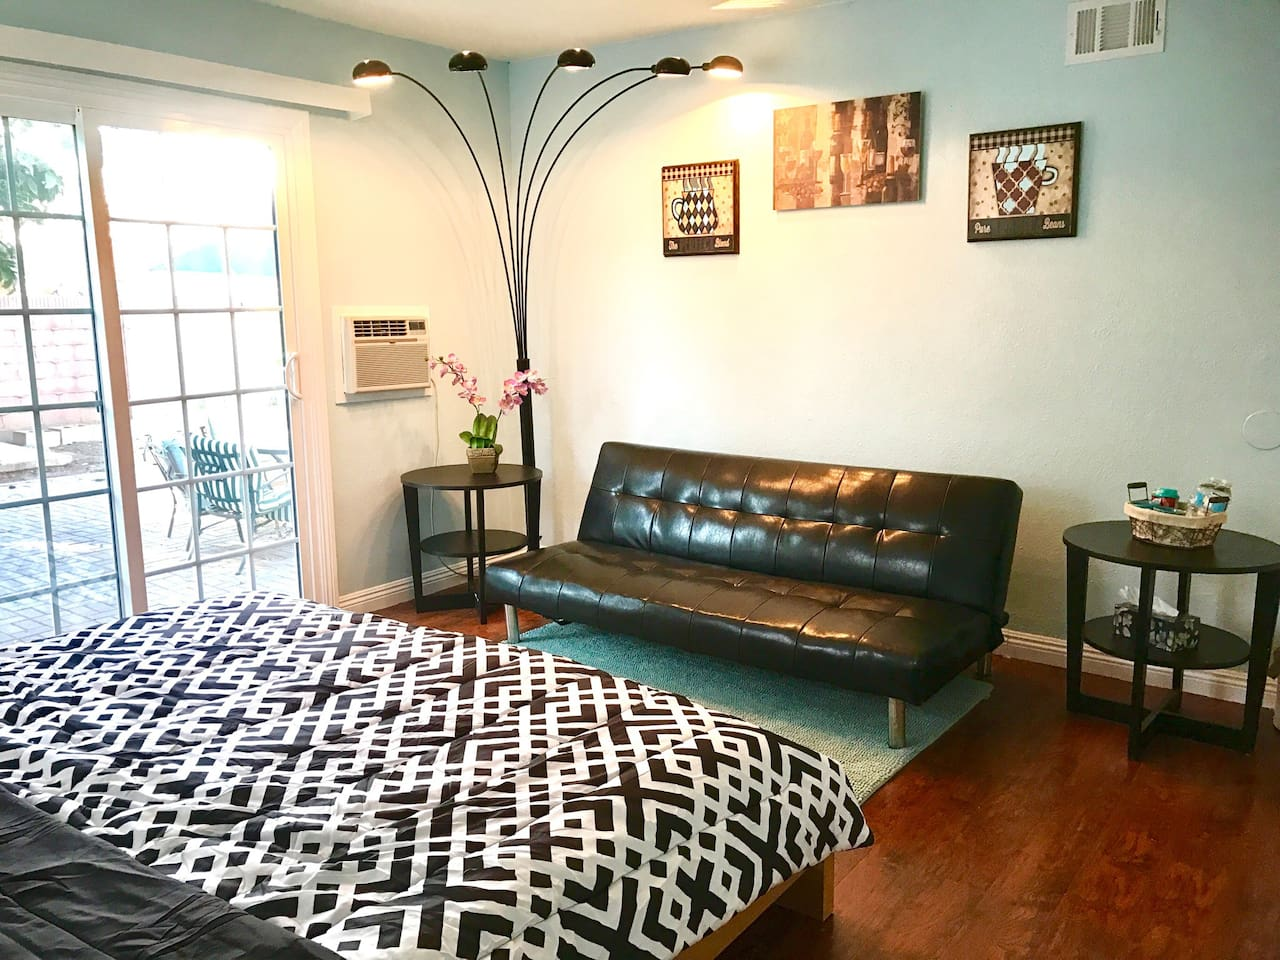 King bed, PRIVATE entrance & bath, FREE parking